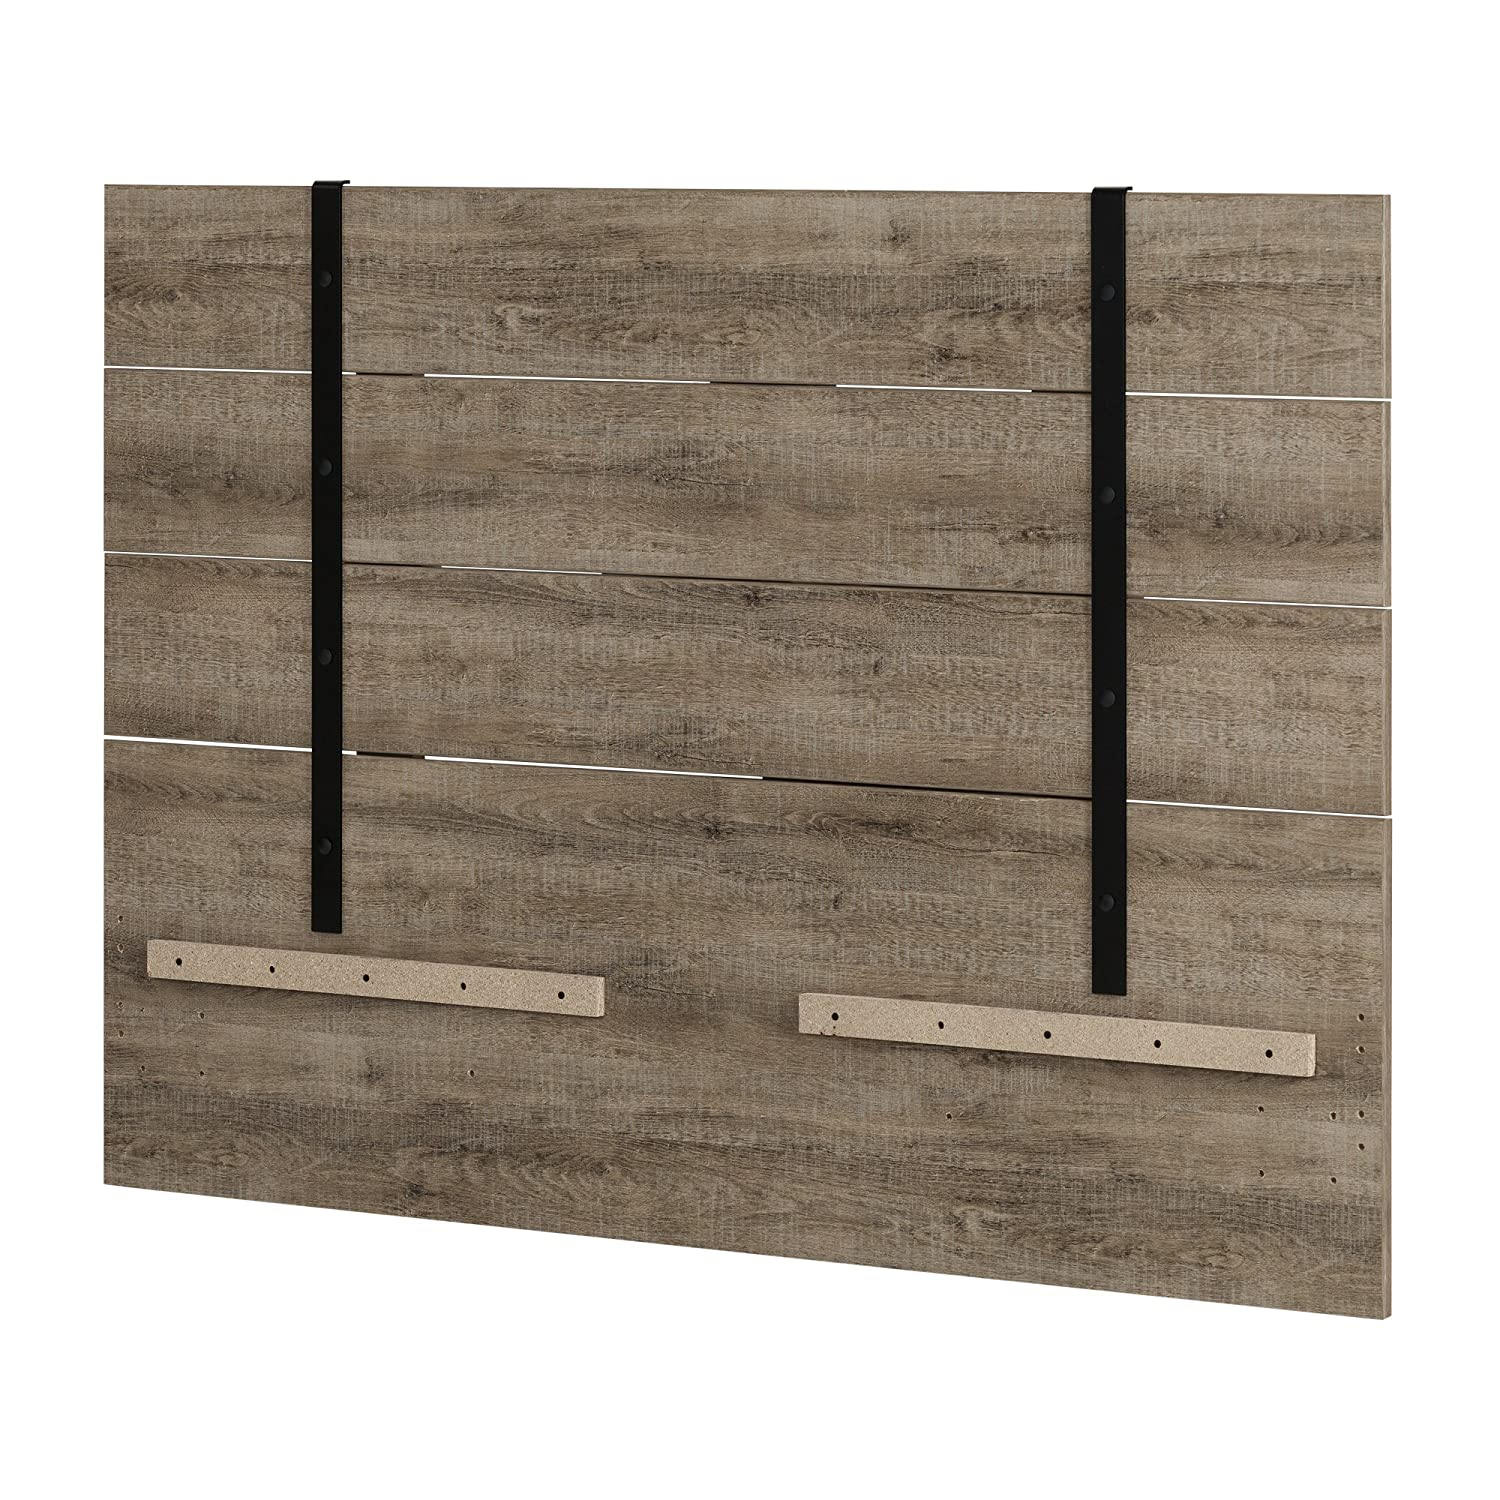 South Shore Furniture Valet Headboard 54 60'' Weathered Oak, Full Queen